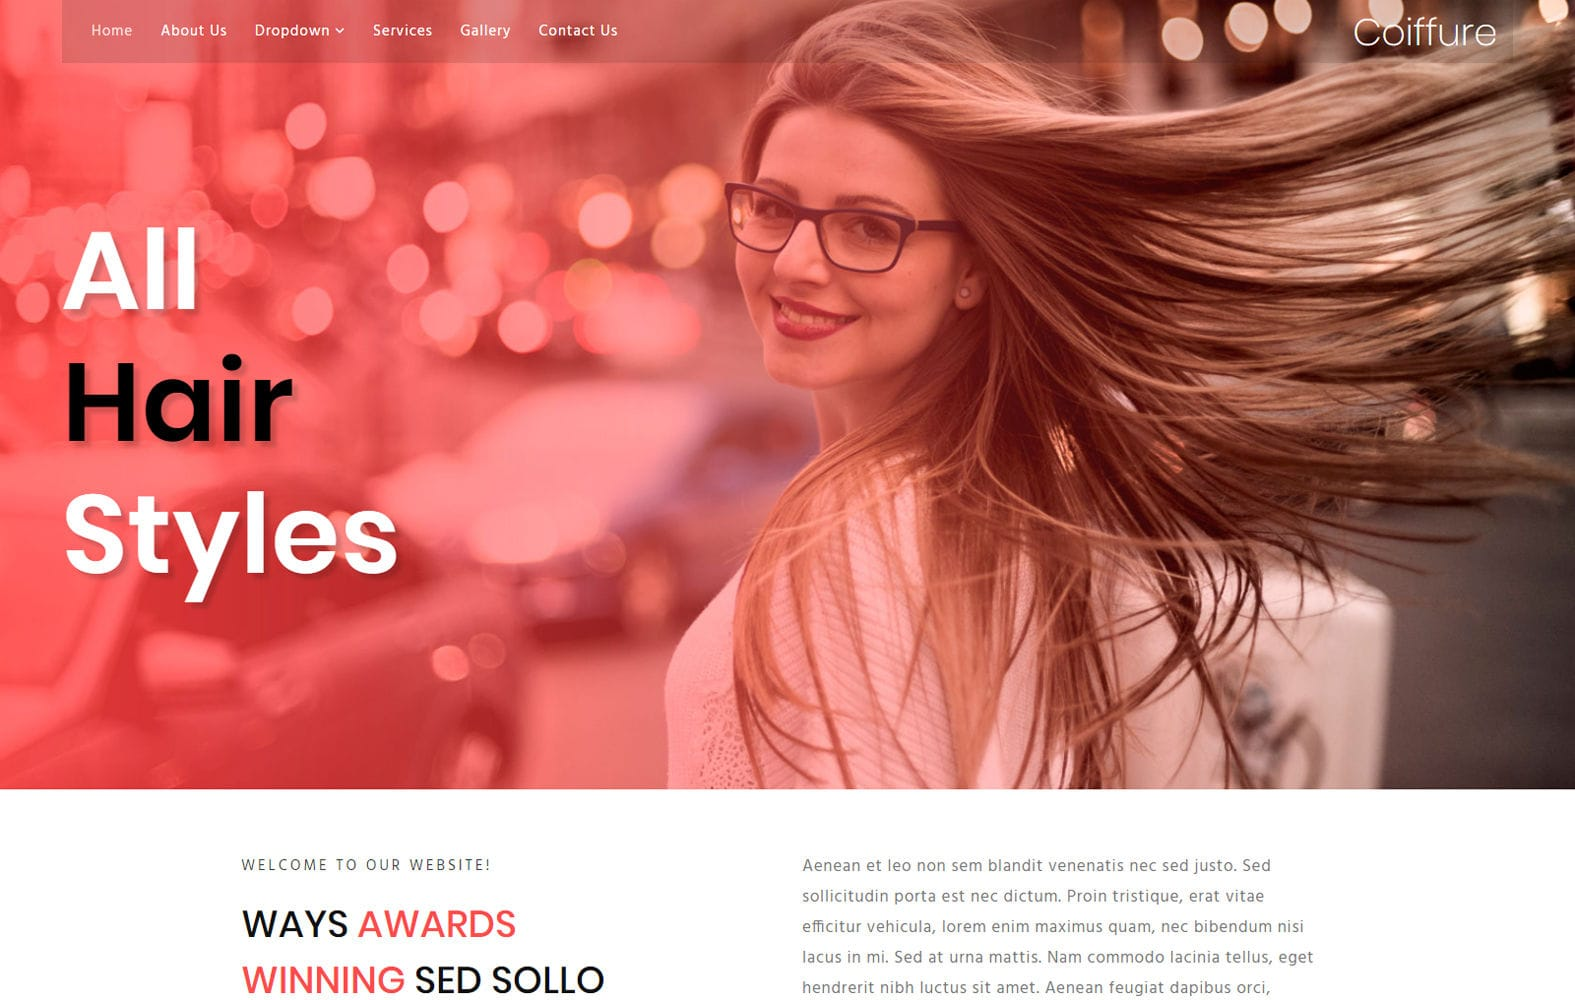 Coiffure Beauty and Spa Website Template , W3Layouts.com